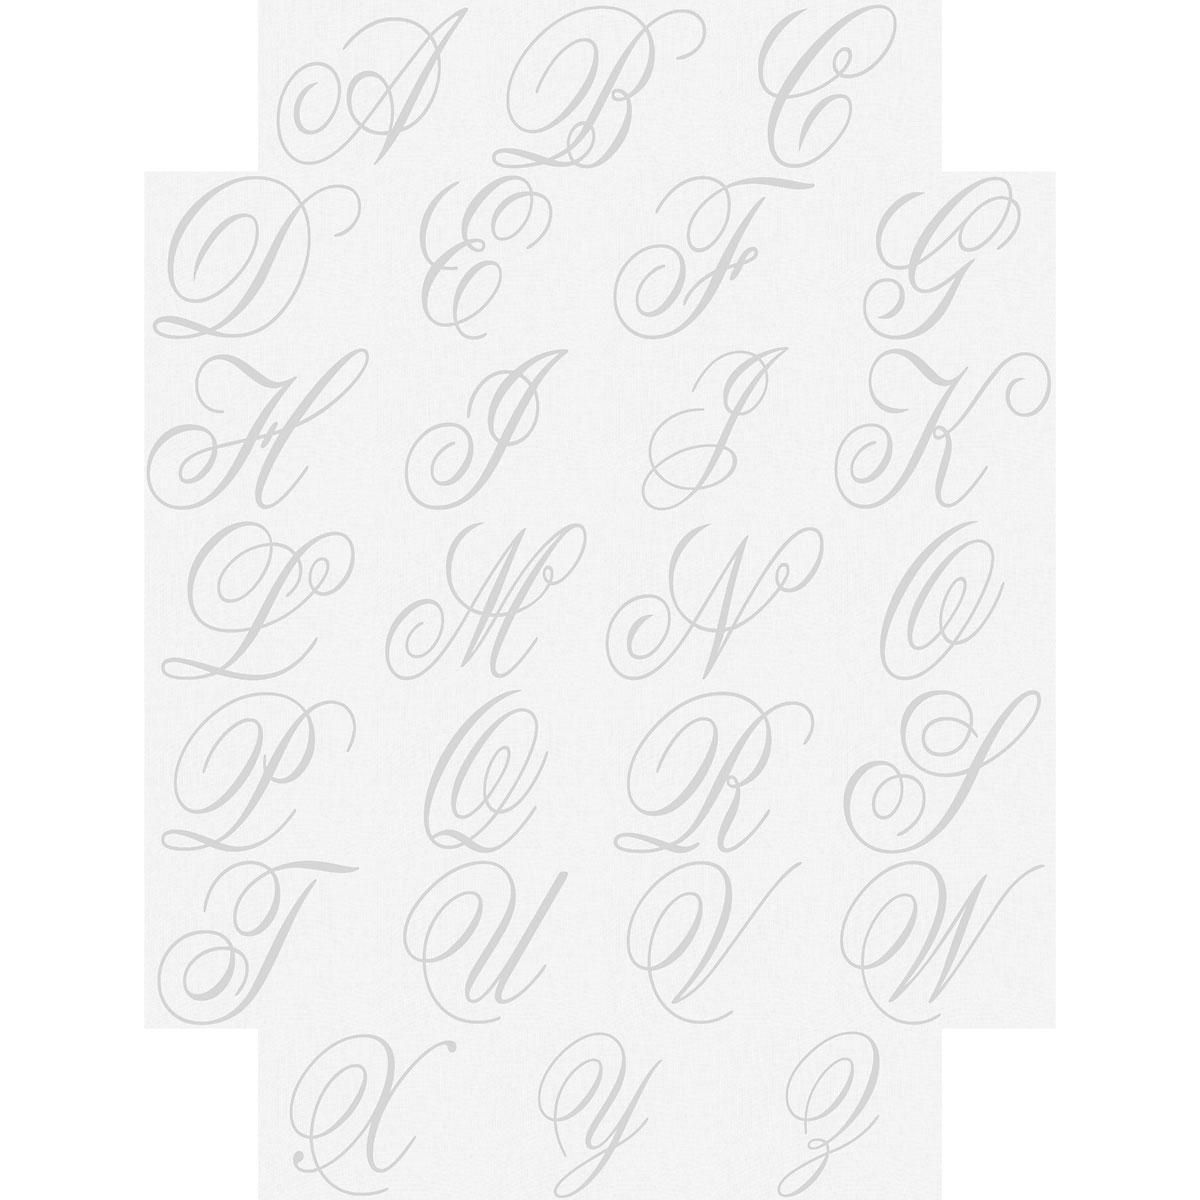 Brushed Initial Note Cards